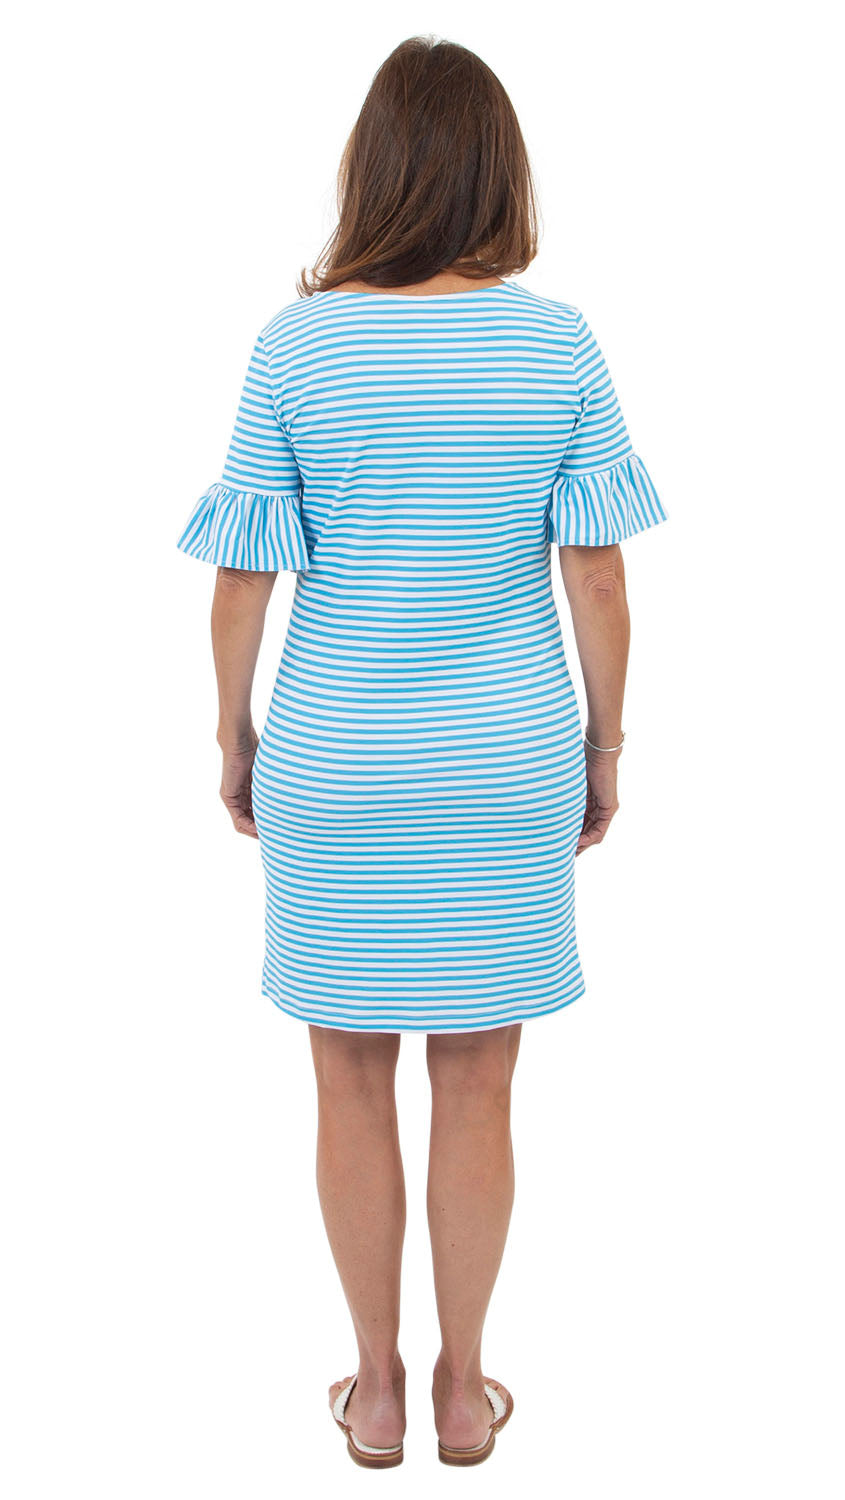 Dockside Dress - Aquarius/White Stripe